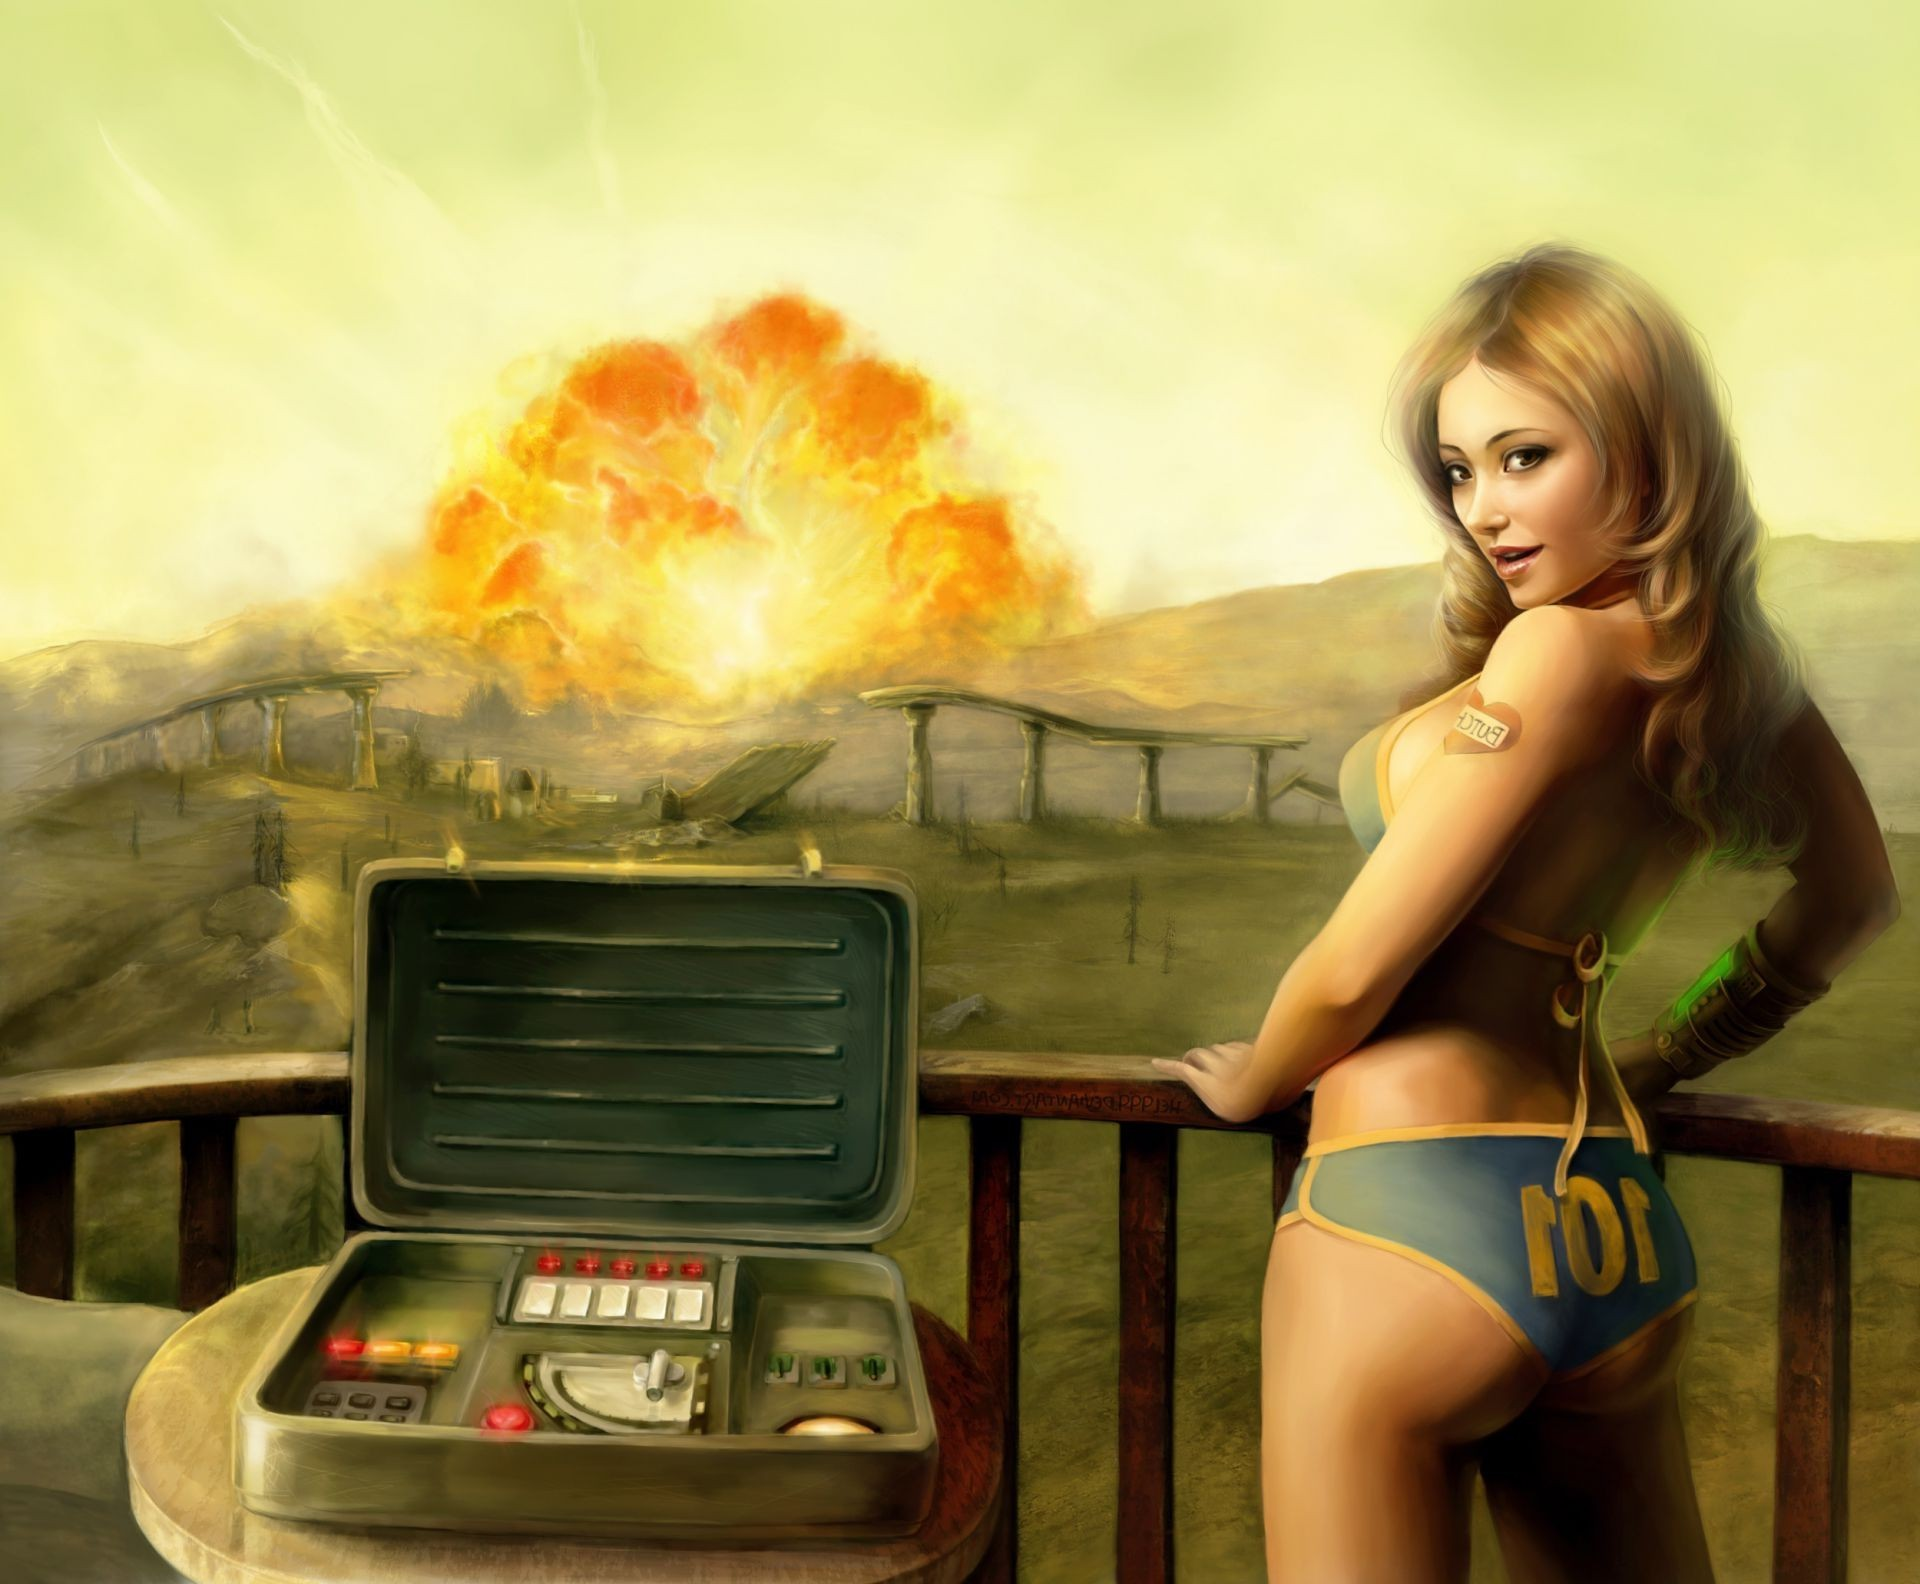 1920x1584 tenpenny babe Fallout 3 girl explosion